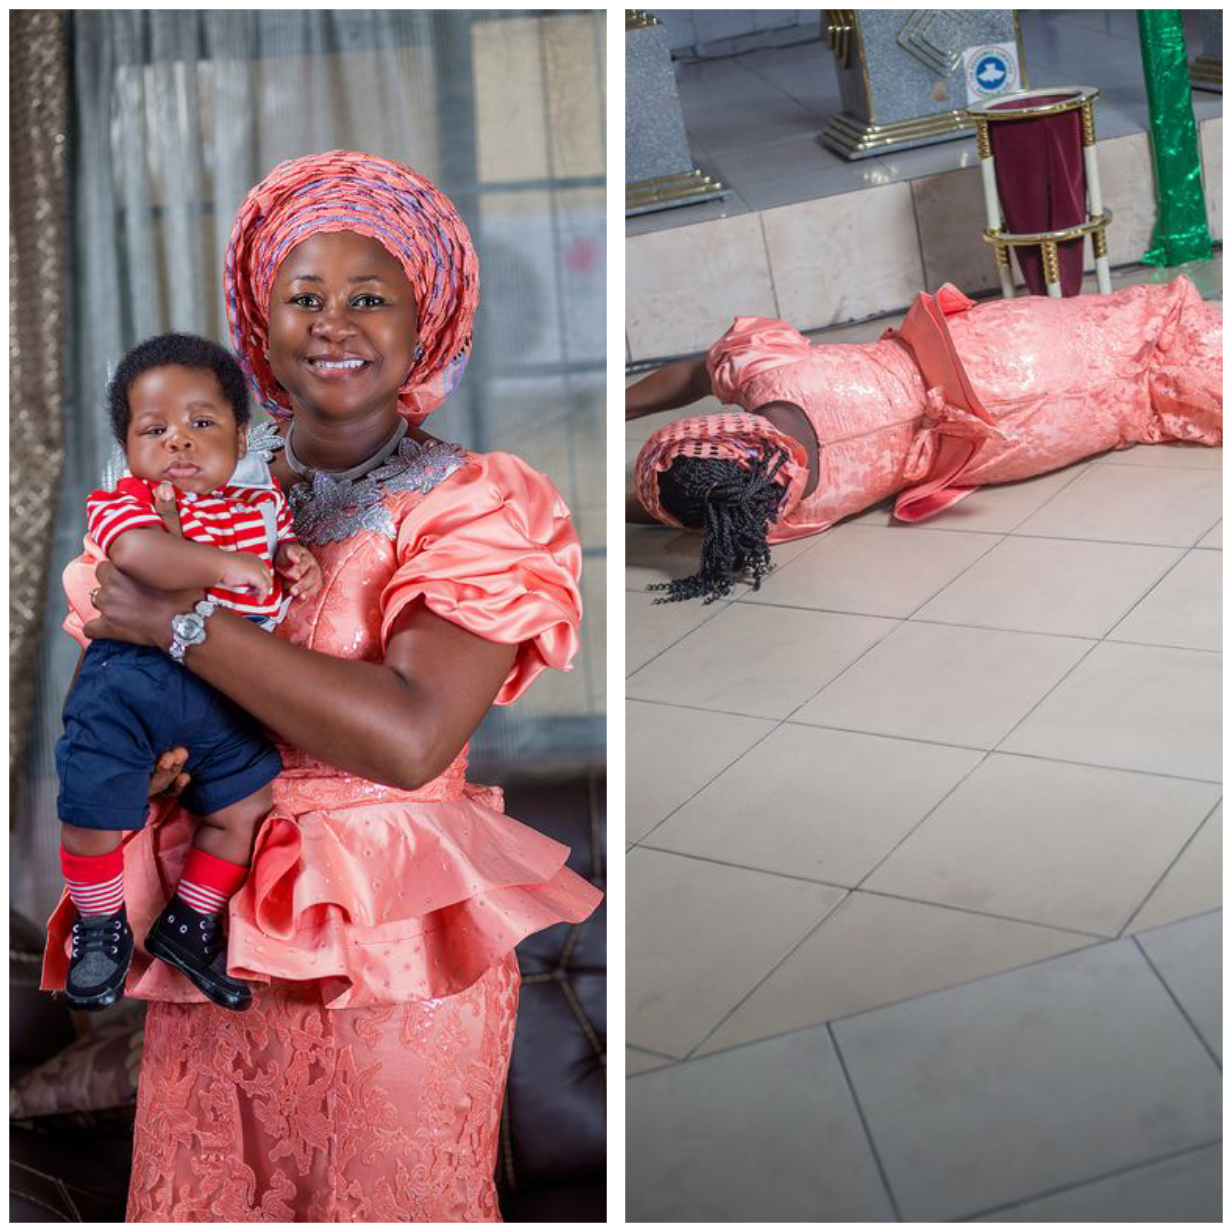 After 16 Years Of Waiting, Nigerian Woman Welcomes Her 2nd Child